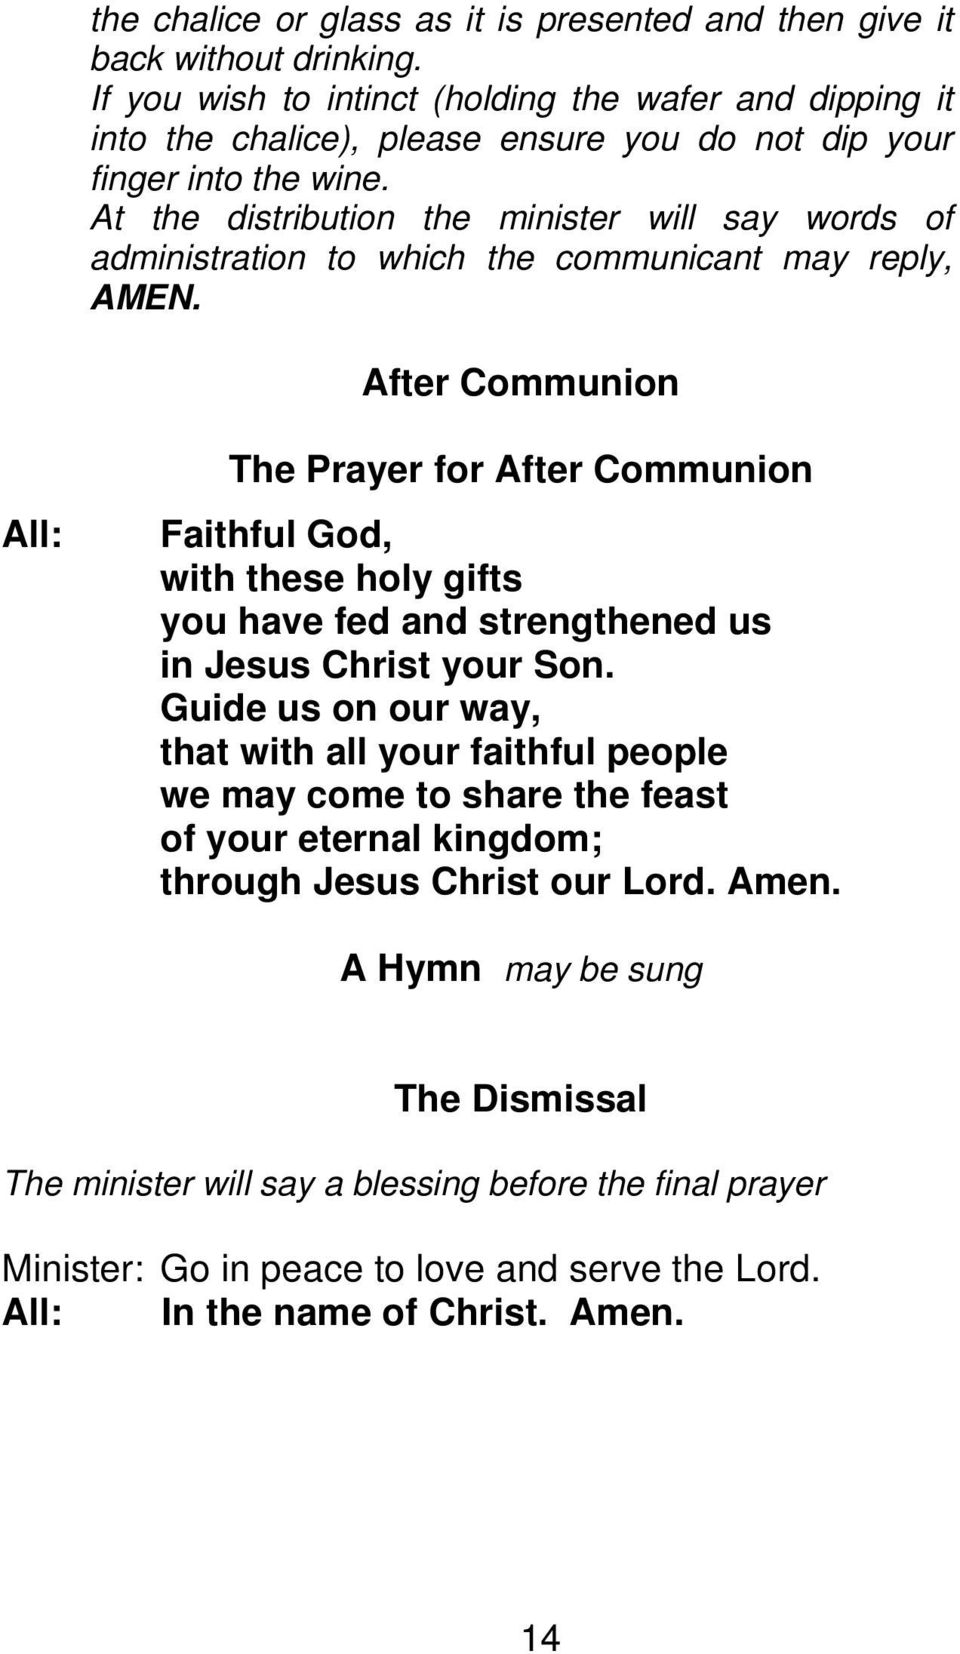 At the distribution the minister will say words of administration to which the communicant may reply, AMEN.